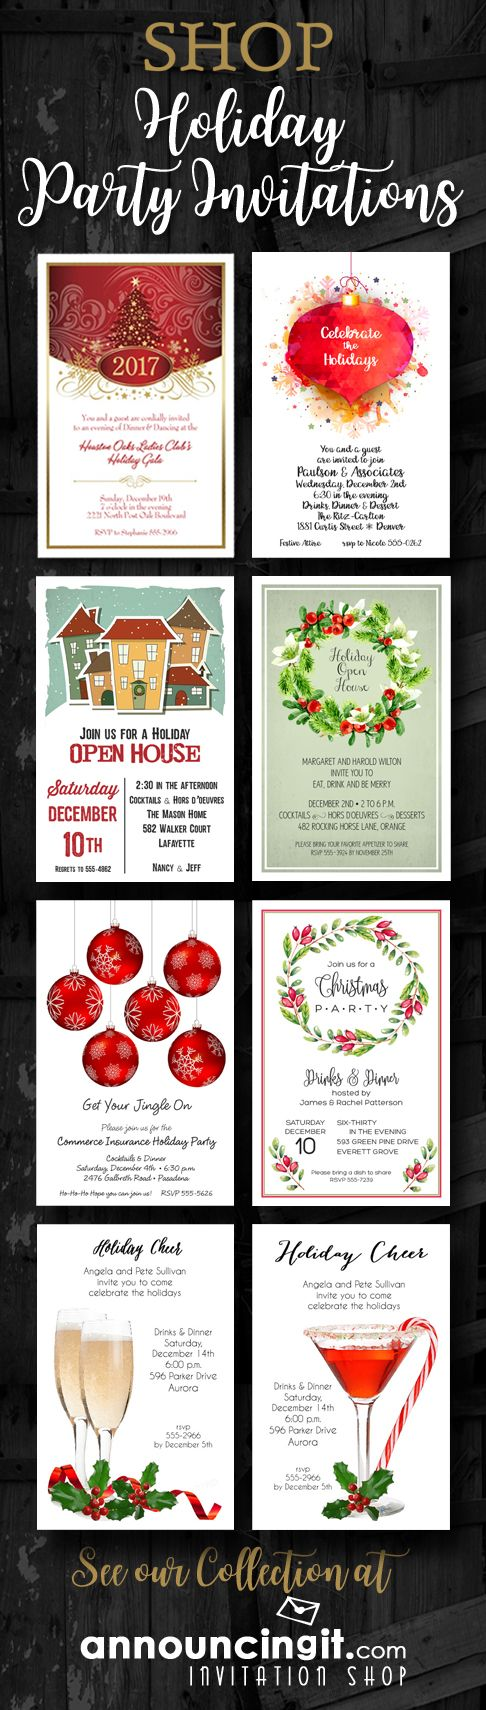 shop holiday party invitations for your christmas party office